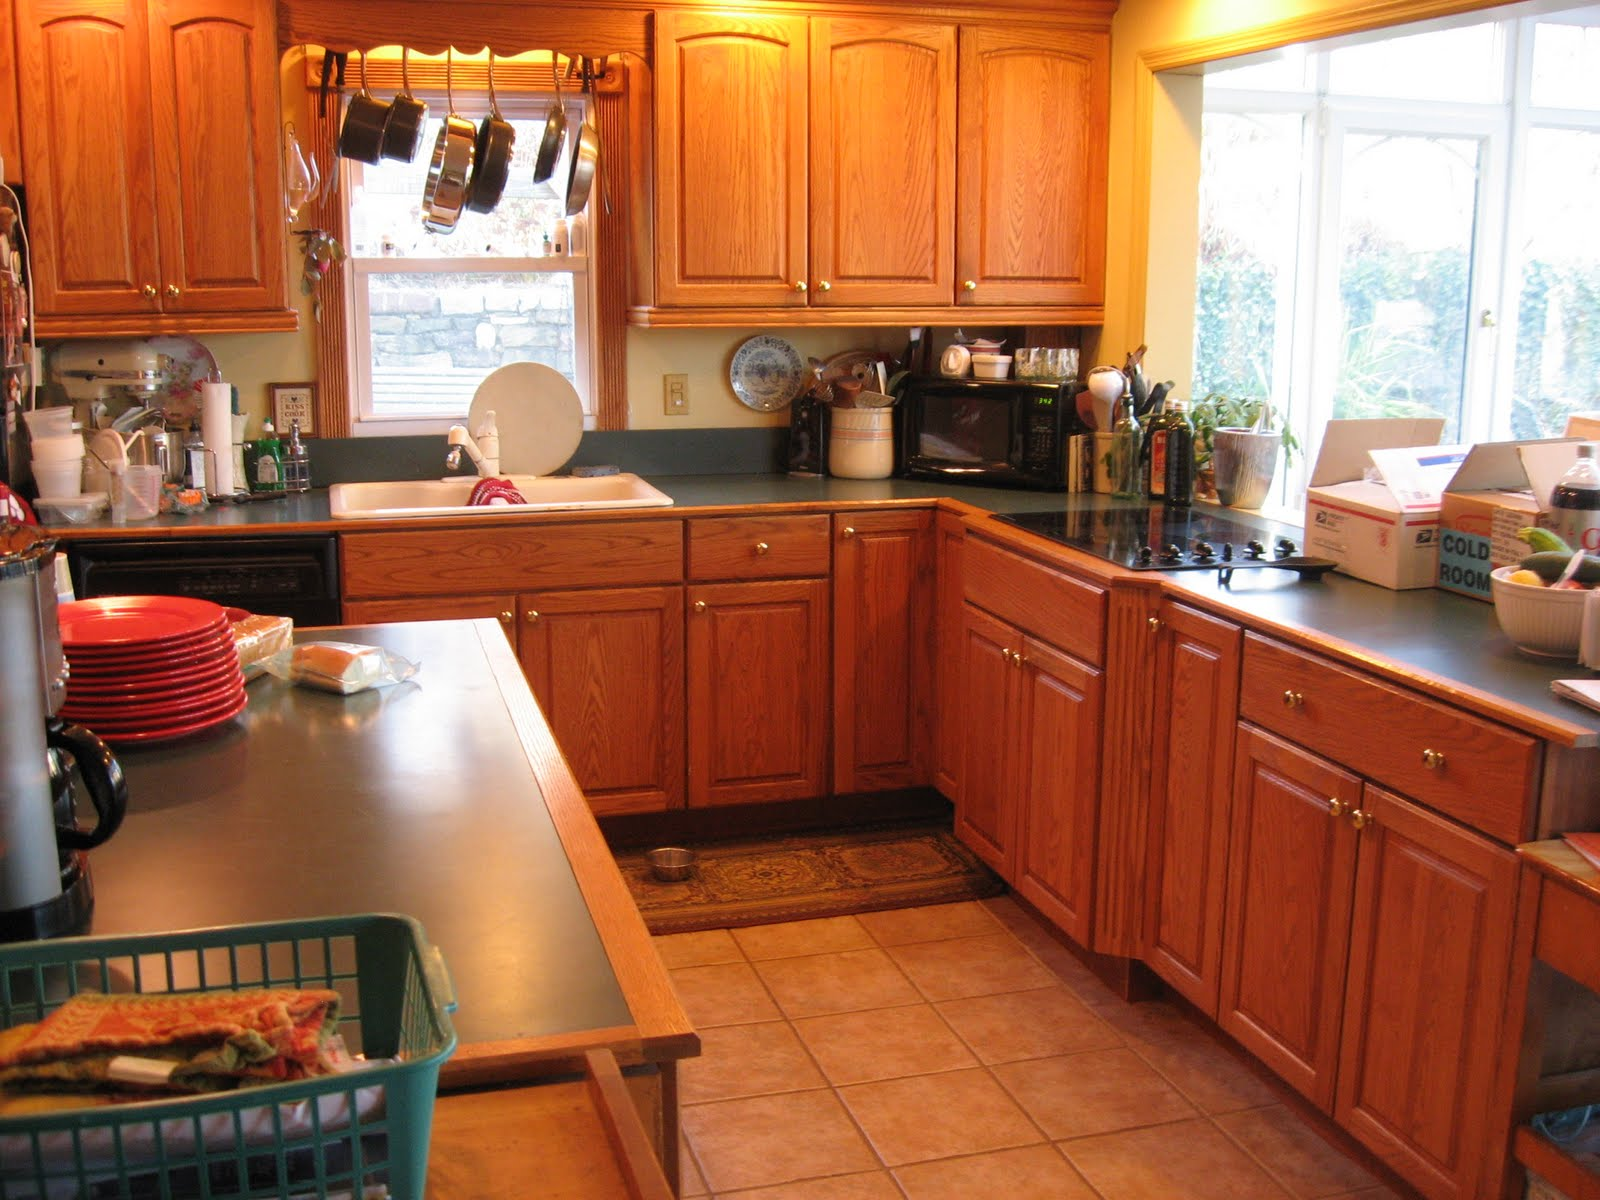 That old house squeezing a vintage look out of a 1980s for 1980 kitchen cabinets